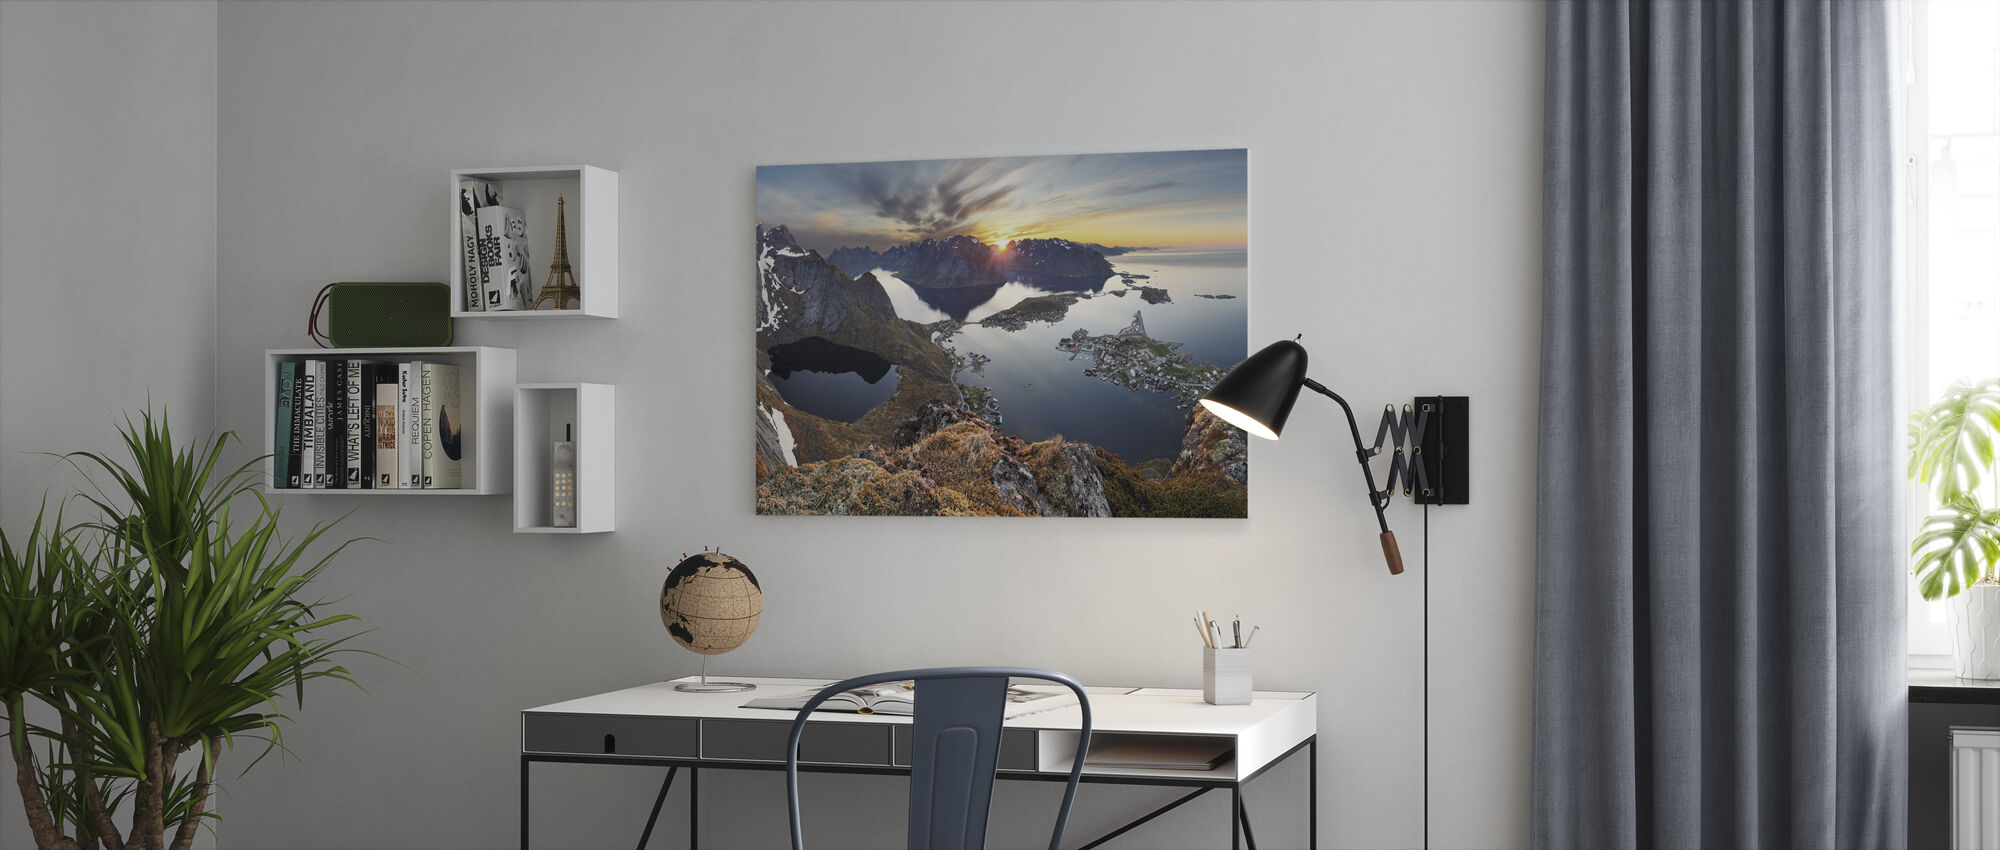 Mountain Landscape at Sunset in Norway - Canvas print - Office